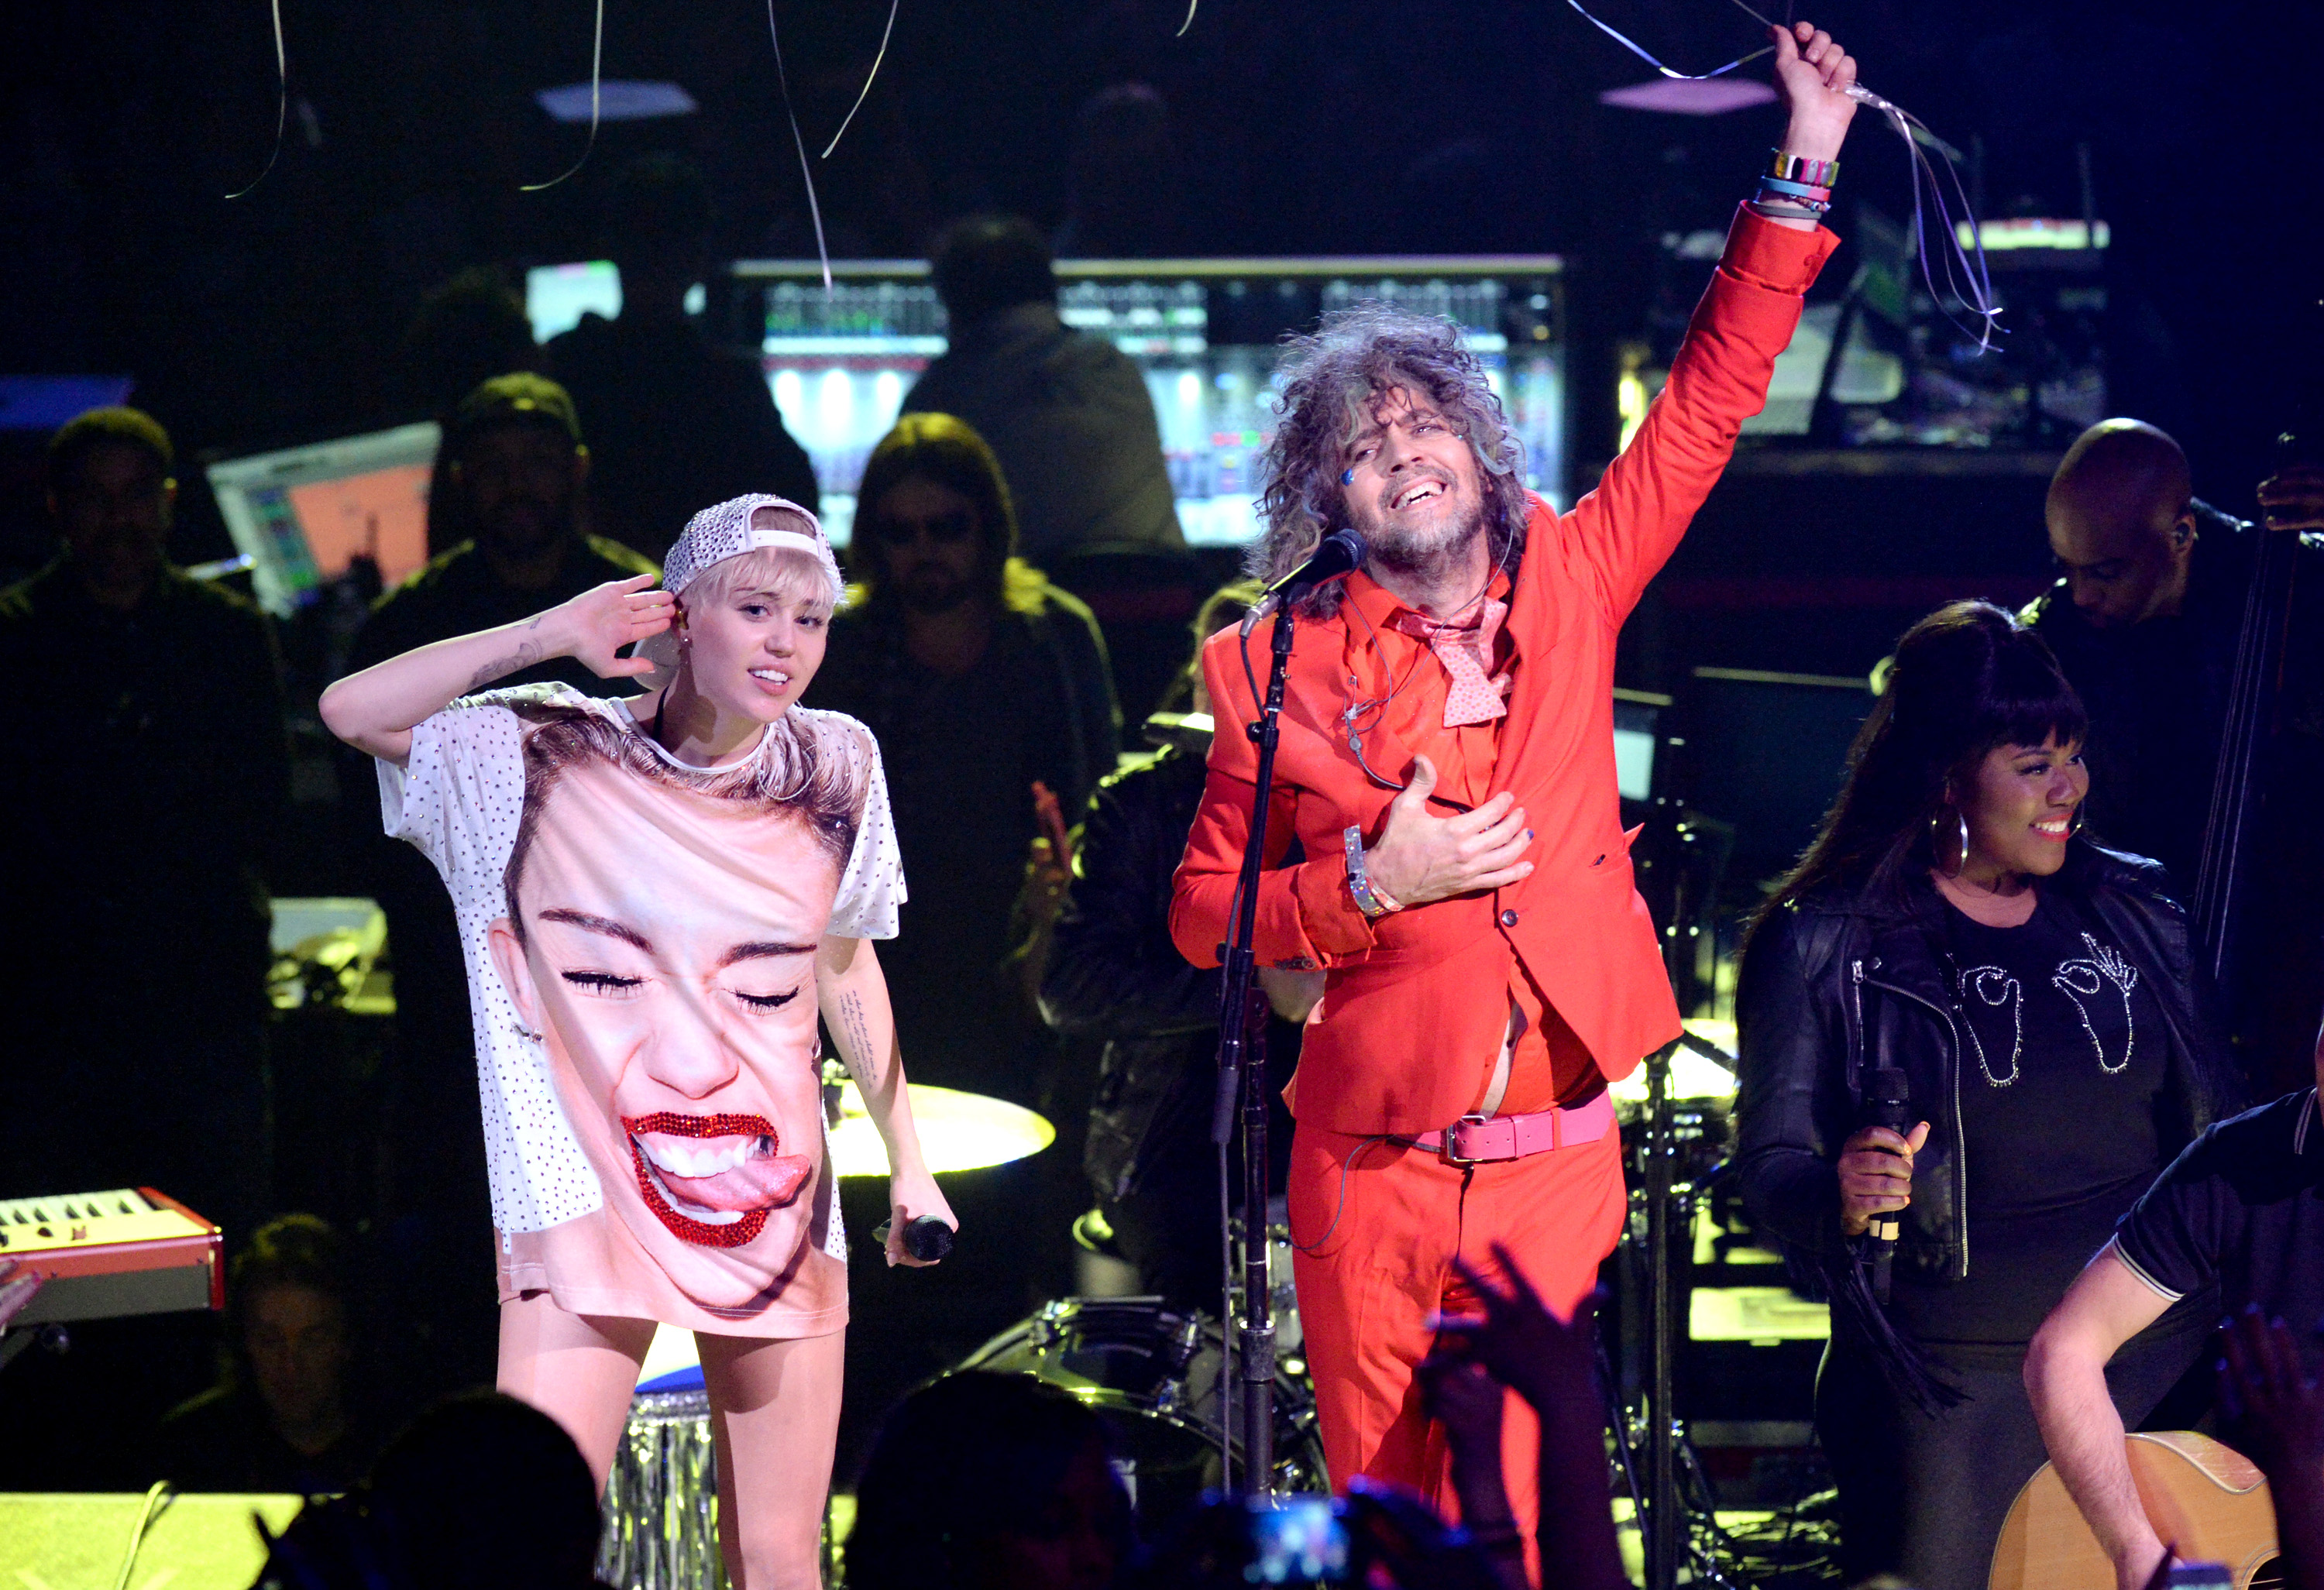 LOS ANGELES, CA - FEBRUARY 22: Miley Cyrus and Wayne Coyne perform at Staples Center on February 22, 2014 in Los Angeles, Cal